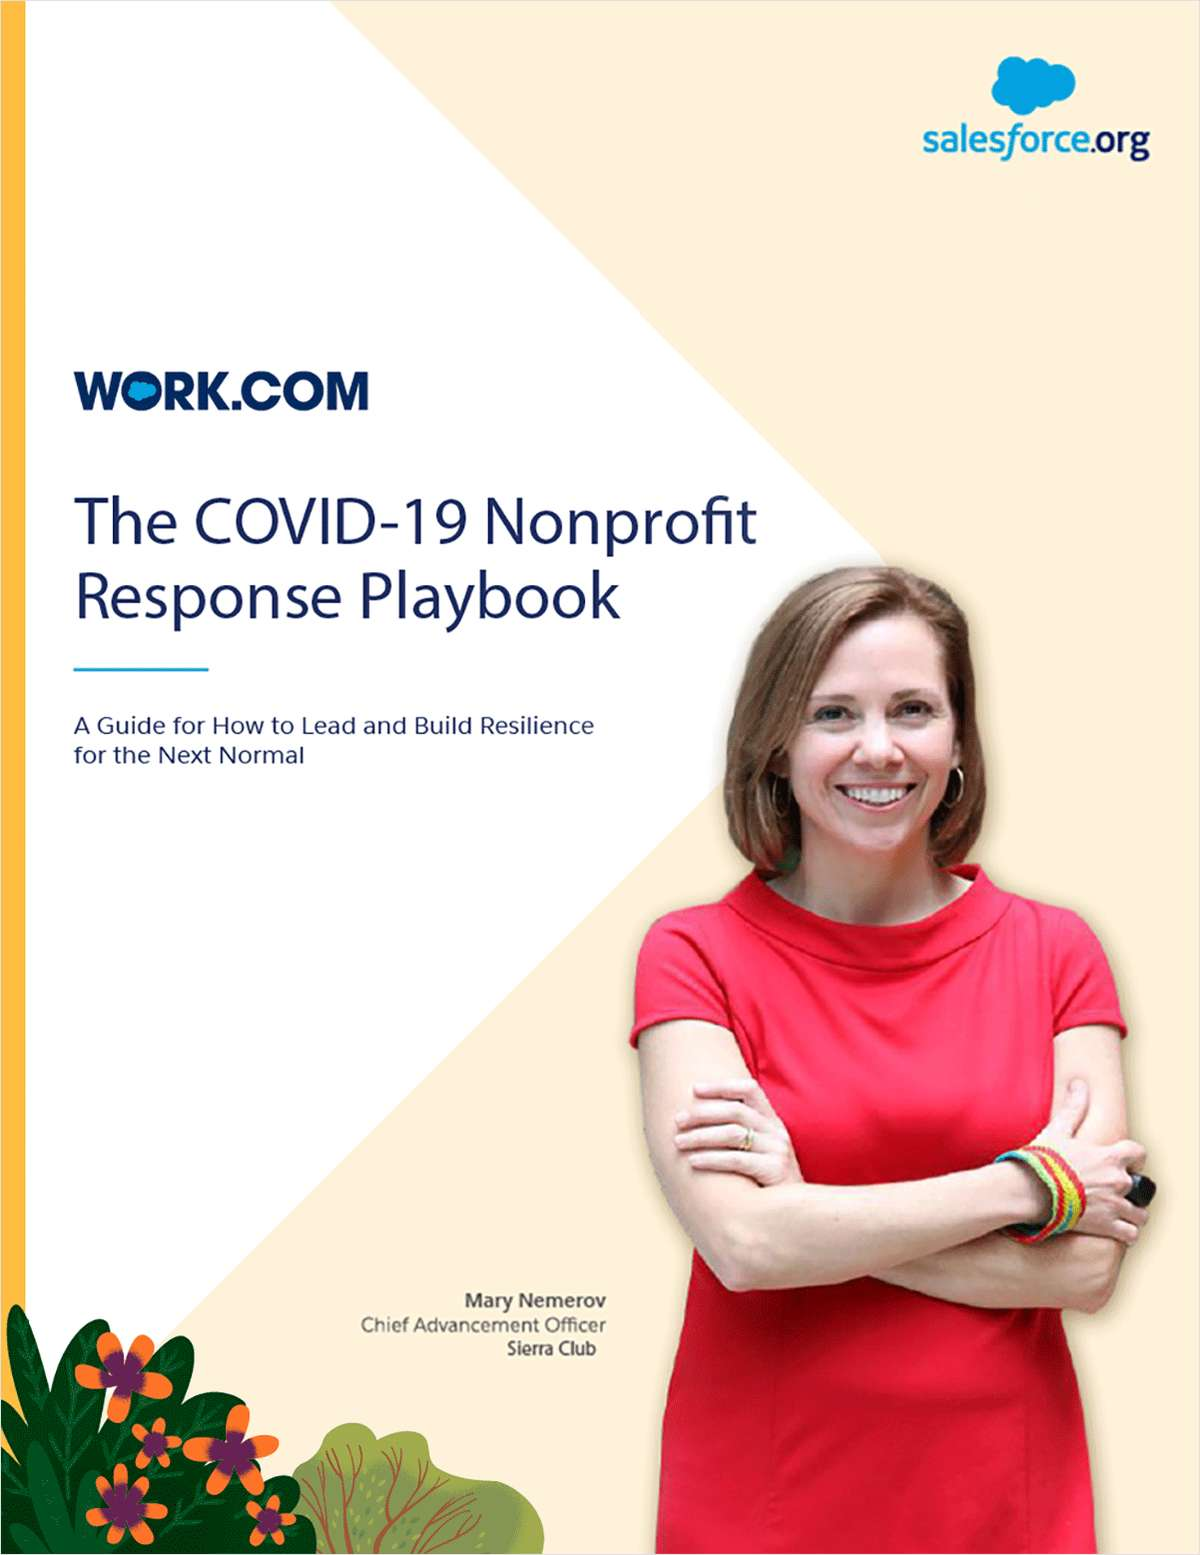 The COVID-19 Nonprofit Response Playbook